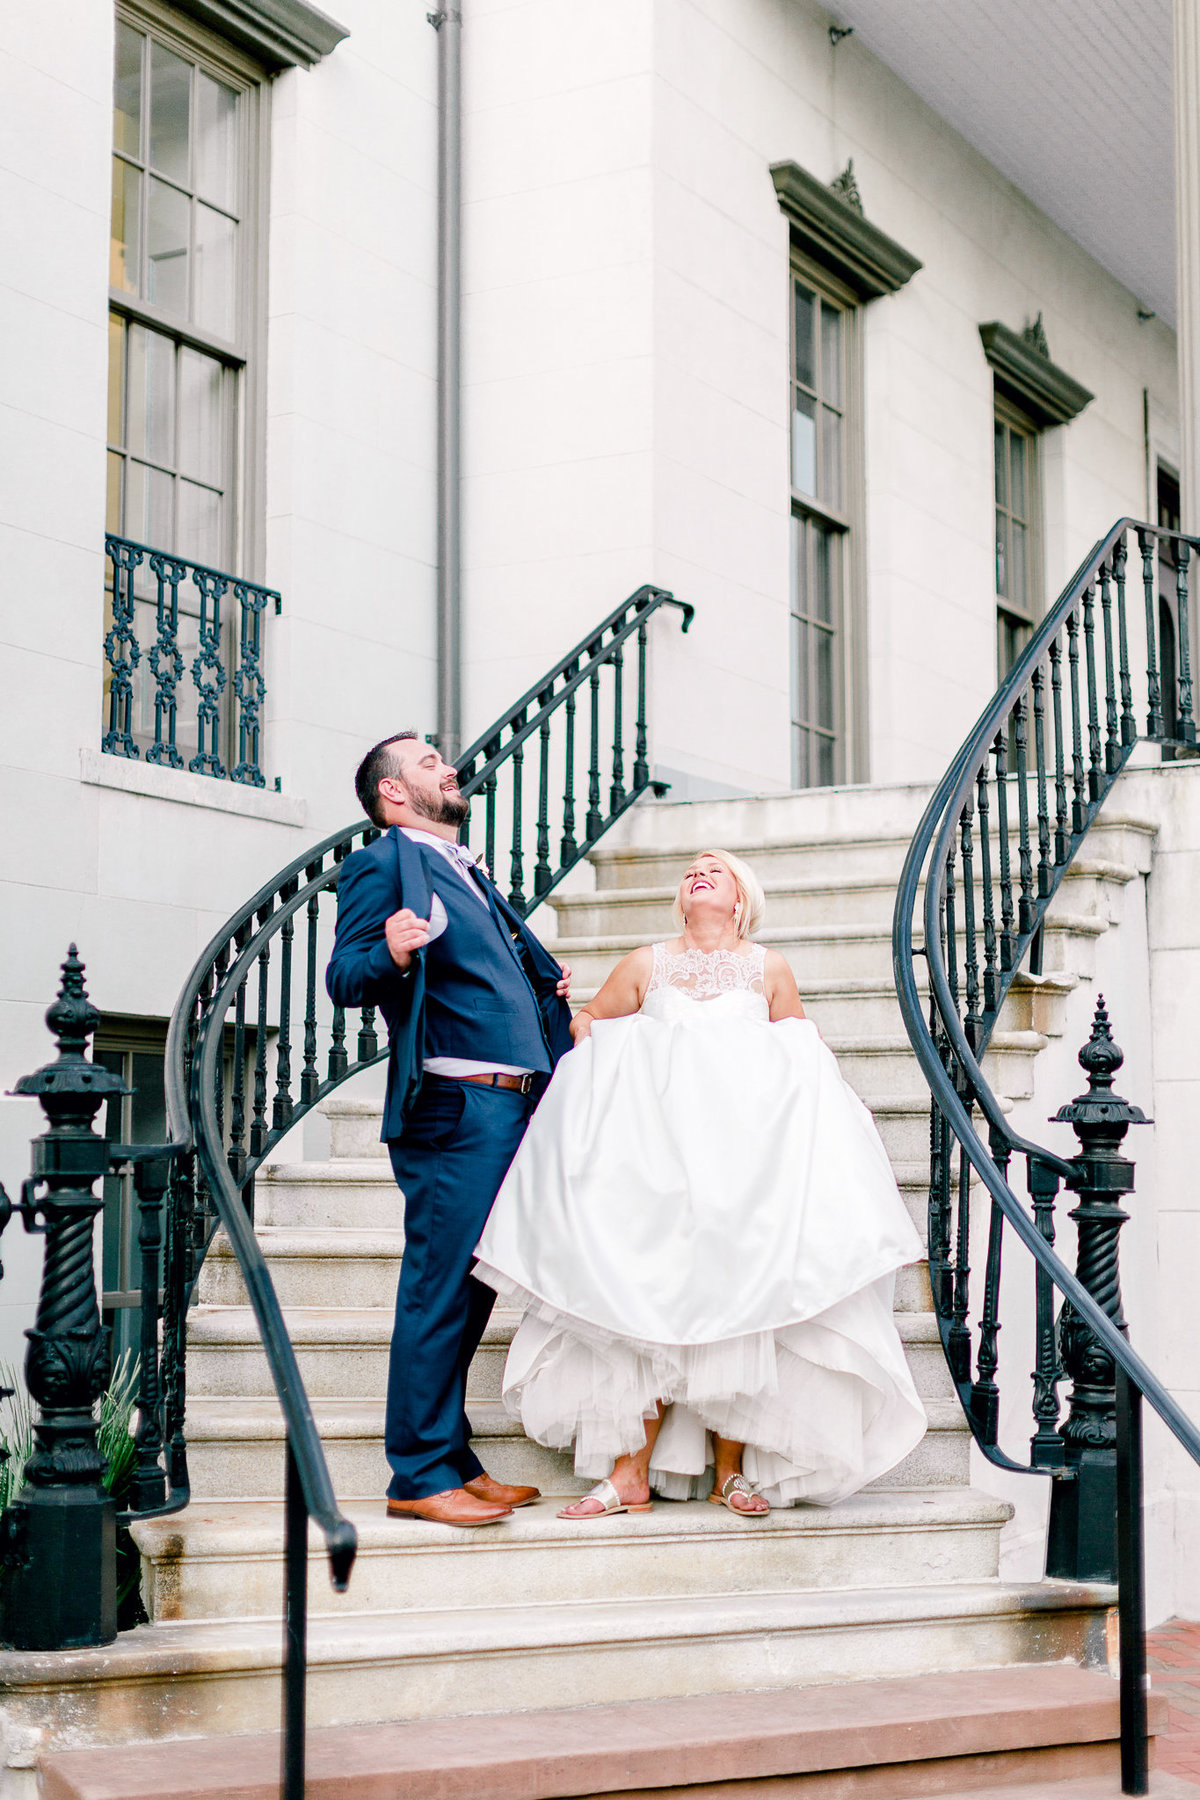 Savannah-Georgia-Wedding-Photographer-Holly-Felts-Photography-Wilmon-Wedding-441